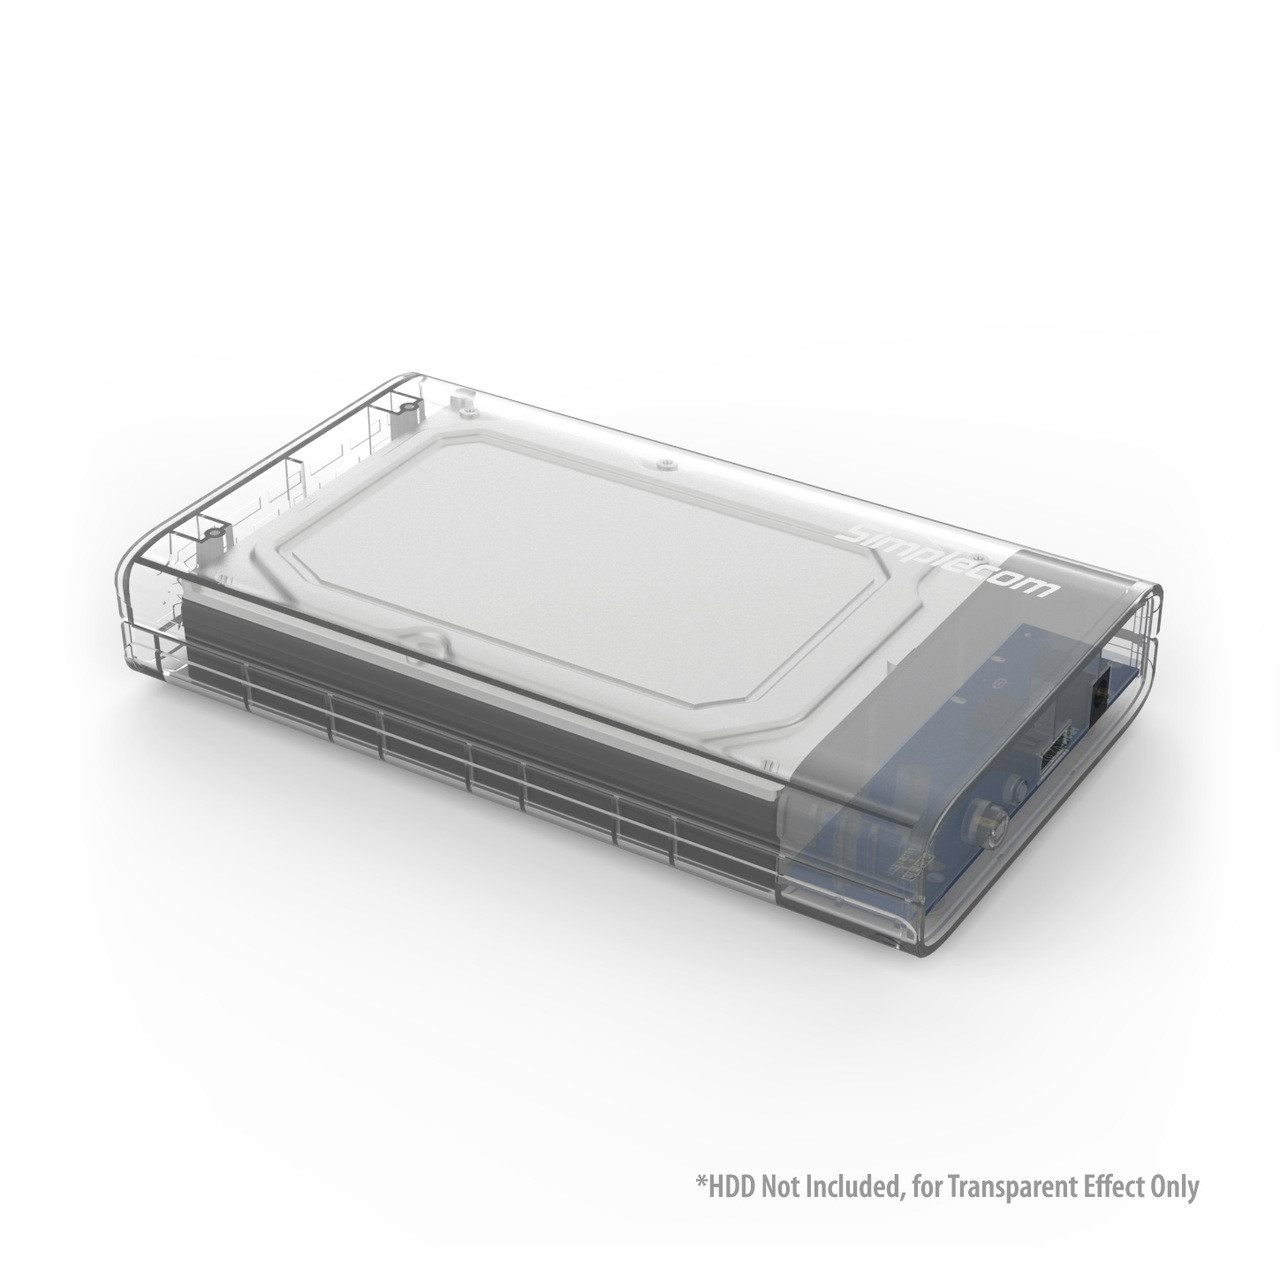 Product image for Simplecom 3.5in SATA to USB 3.0 Hard Drive Docking Box Clear | CX Computer Superstore